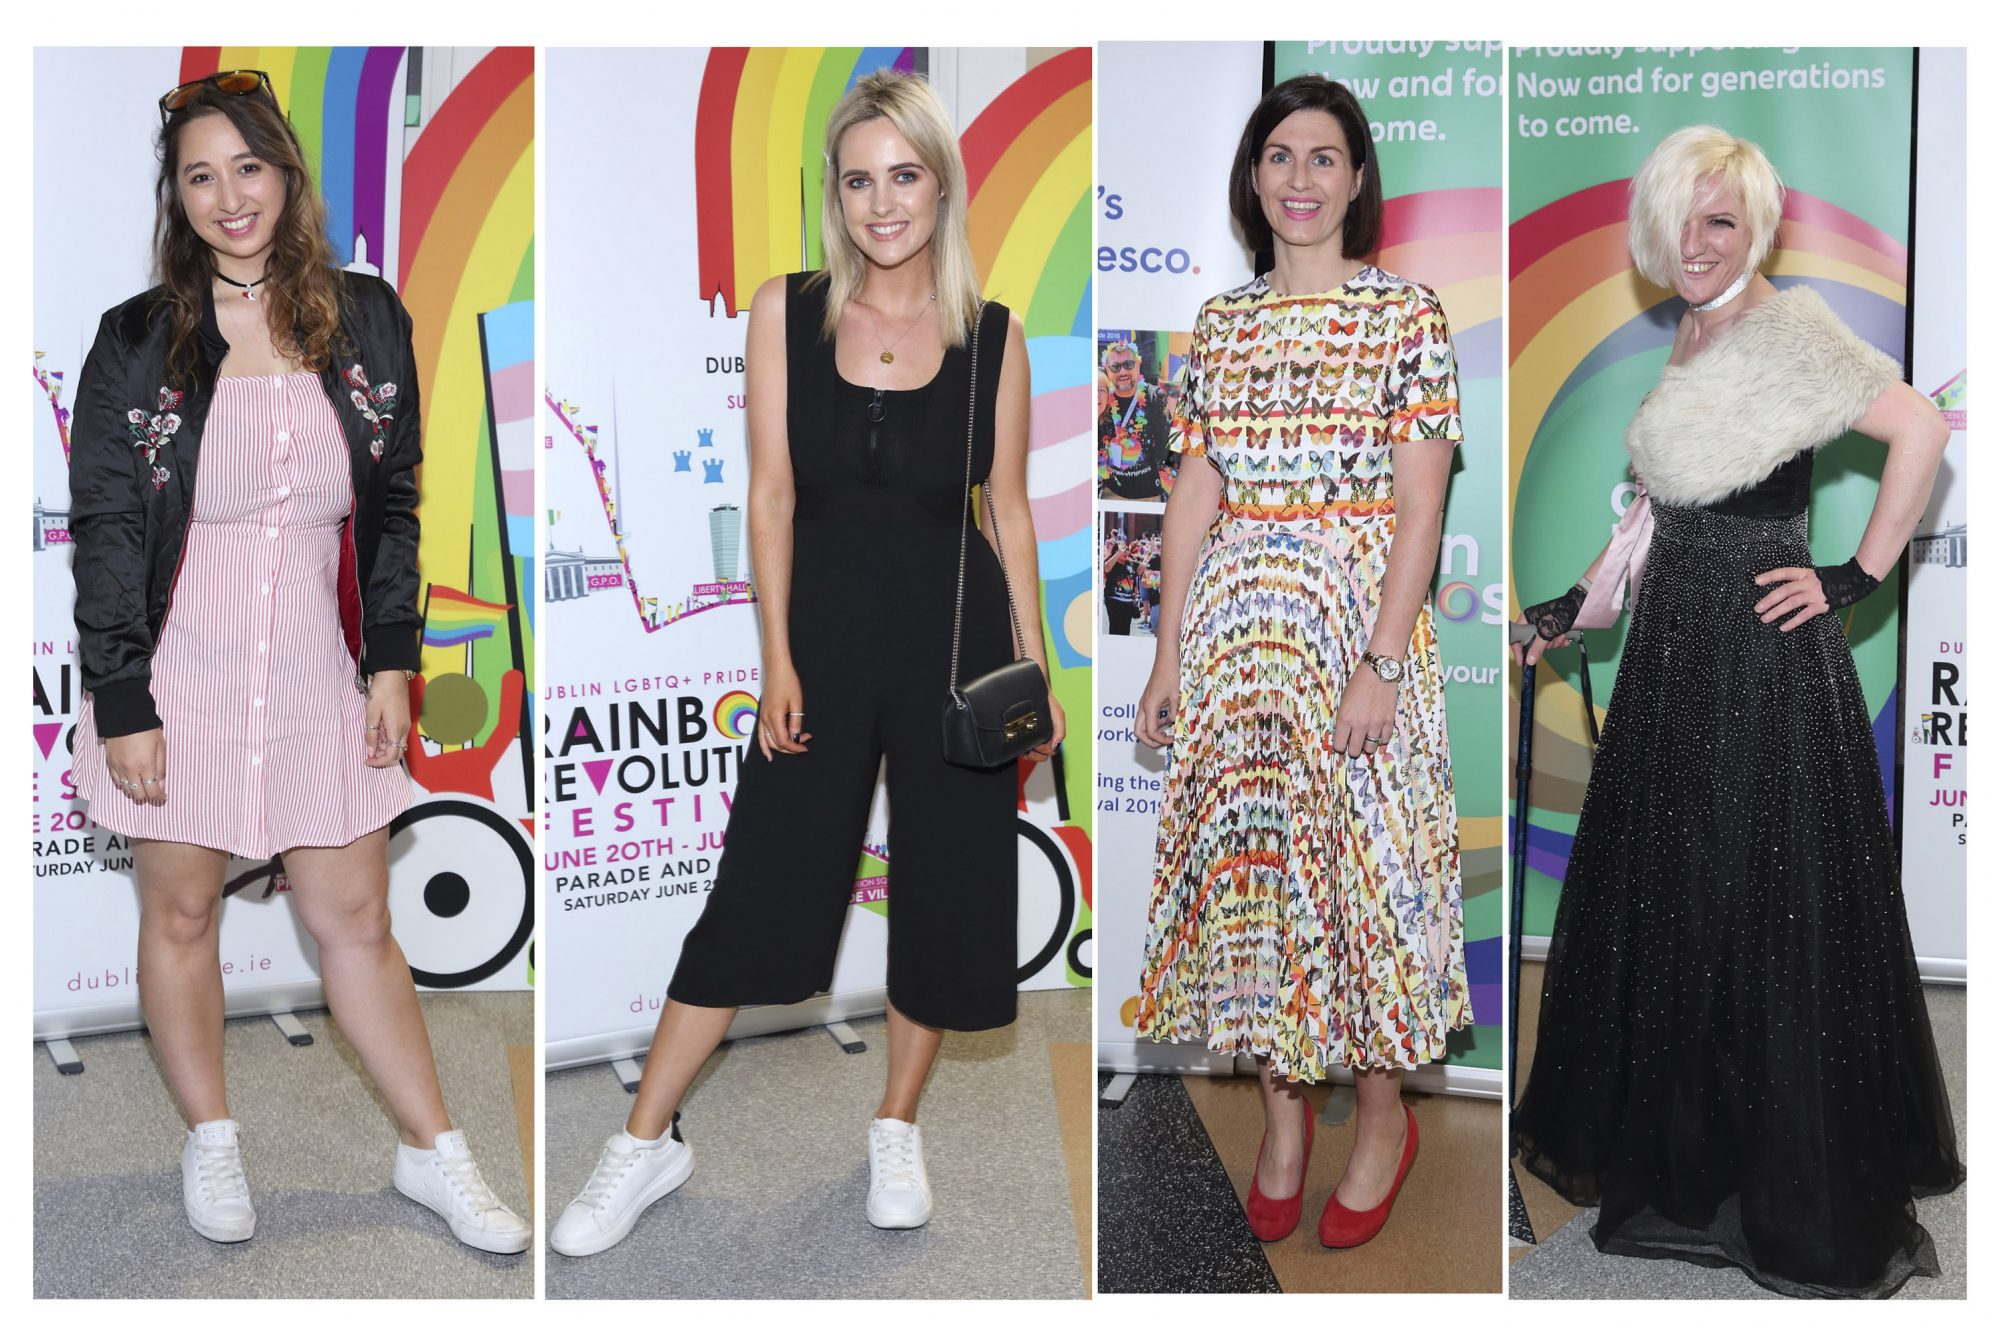 (L-R) Nirina Plunkett, Lorna Duffy, Aoife Beirne, and Nem Kearns pictured at the launch of the Dublin LGBTQ+ Pride Festival 2019 in partnership with platinum sponsor Tesco at the GPO, Dublin. Picture: Brian McEvoy Photography